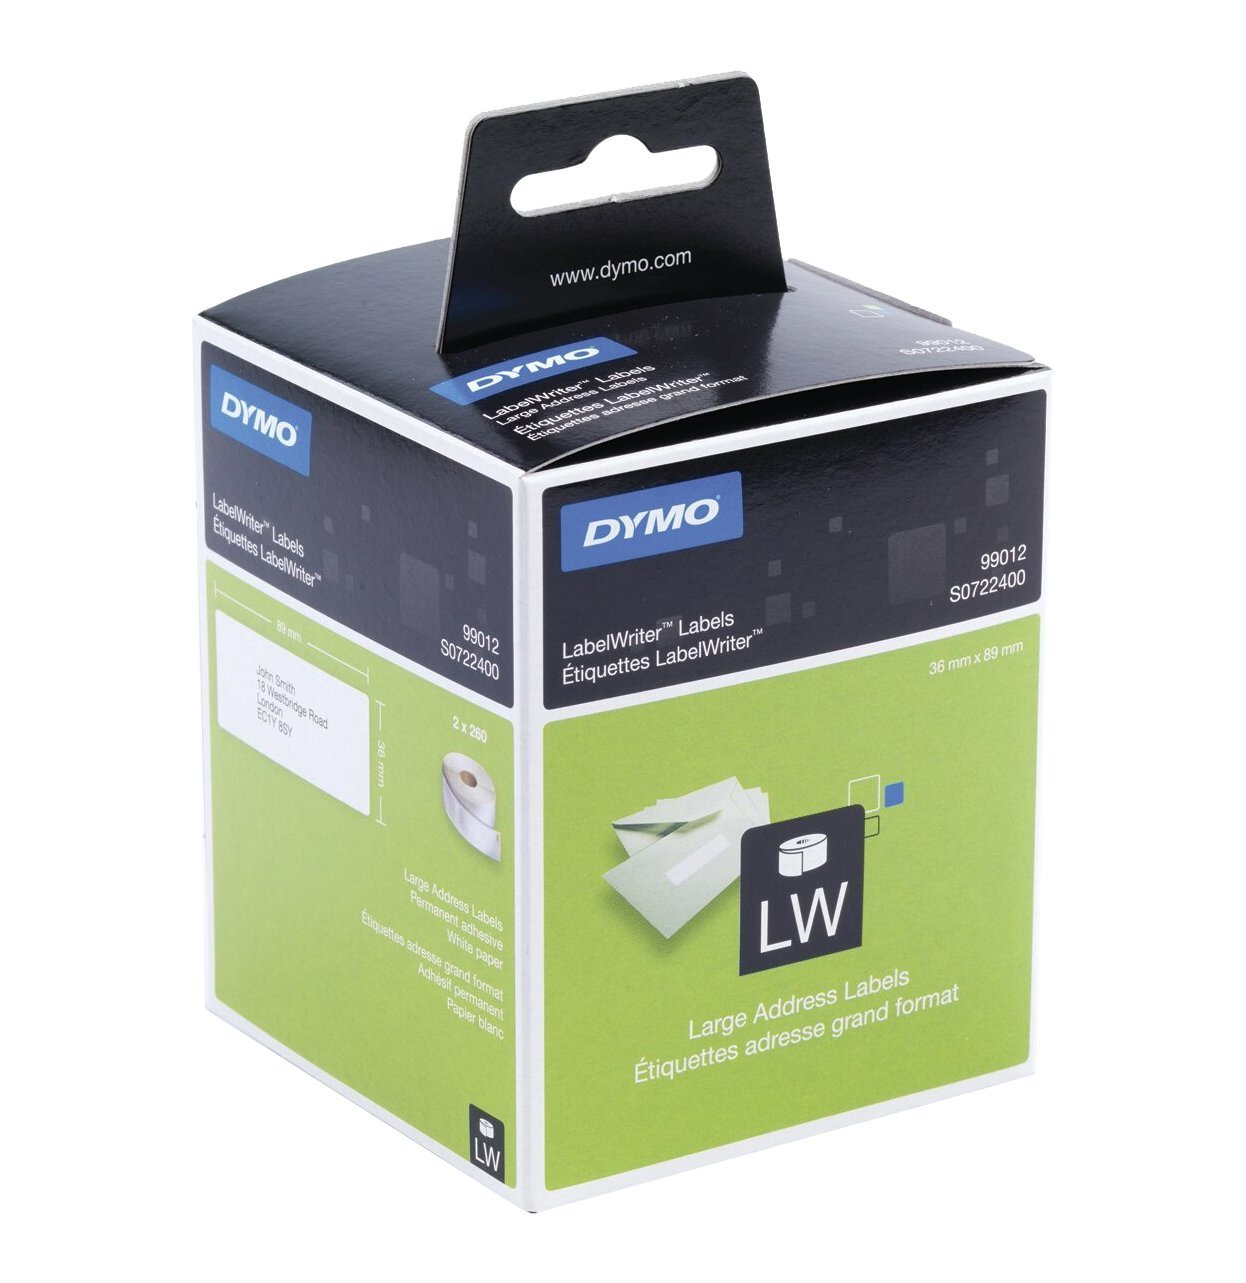 S0722400 Dymo Permanent Adhesive Paper Address Labels - White - 36 X 89 Mm - 520 Label(s) ( 2 Roll(s) X 260 ) - For DYMO LabelWriter 300, 400, 450, 4XL - S0722400 - C2000